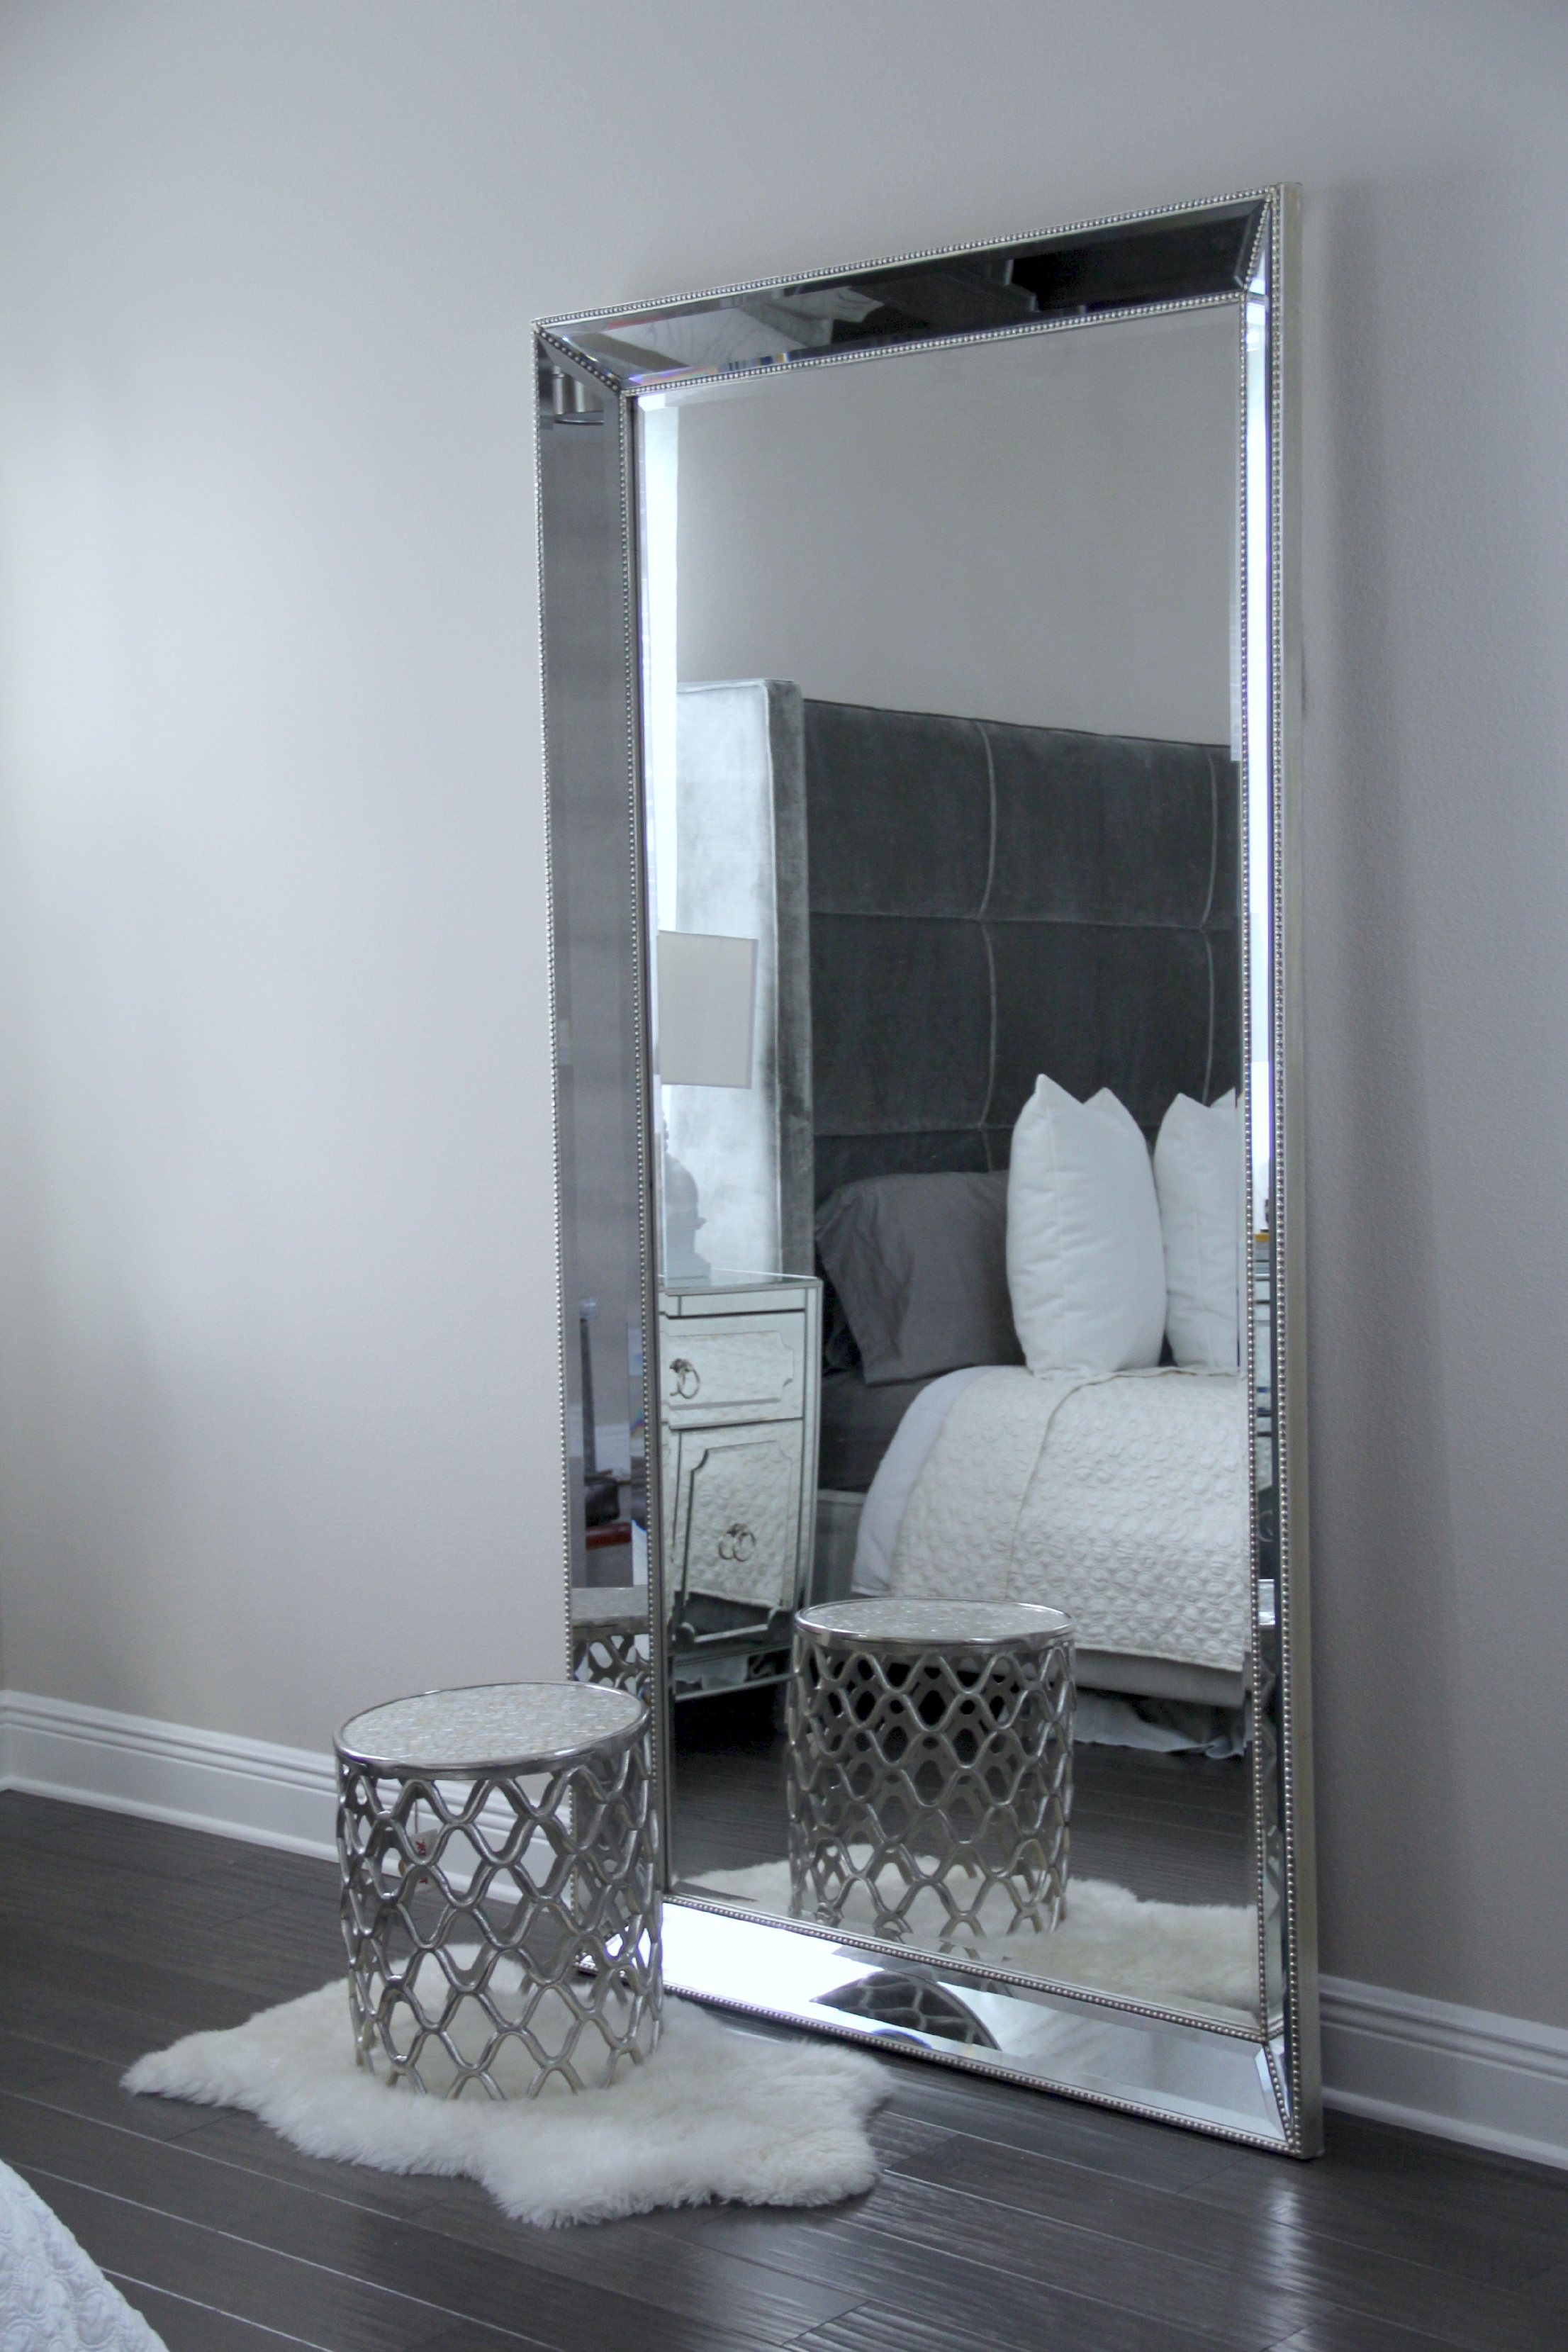 Fashionable Huge Wall Mirrors Ikea Inside Mirrors: Reflect Your Personal Style With Floor Length (View 2 of 20)